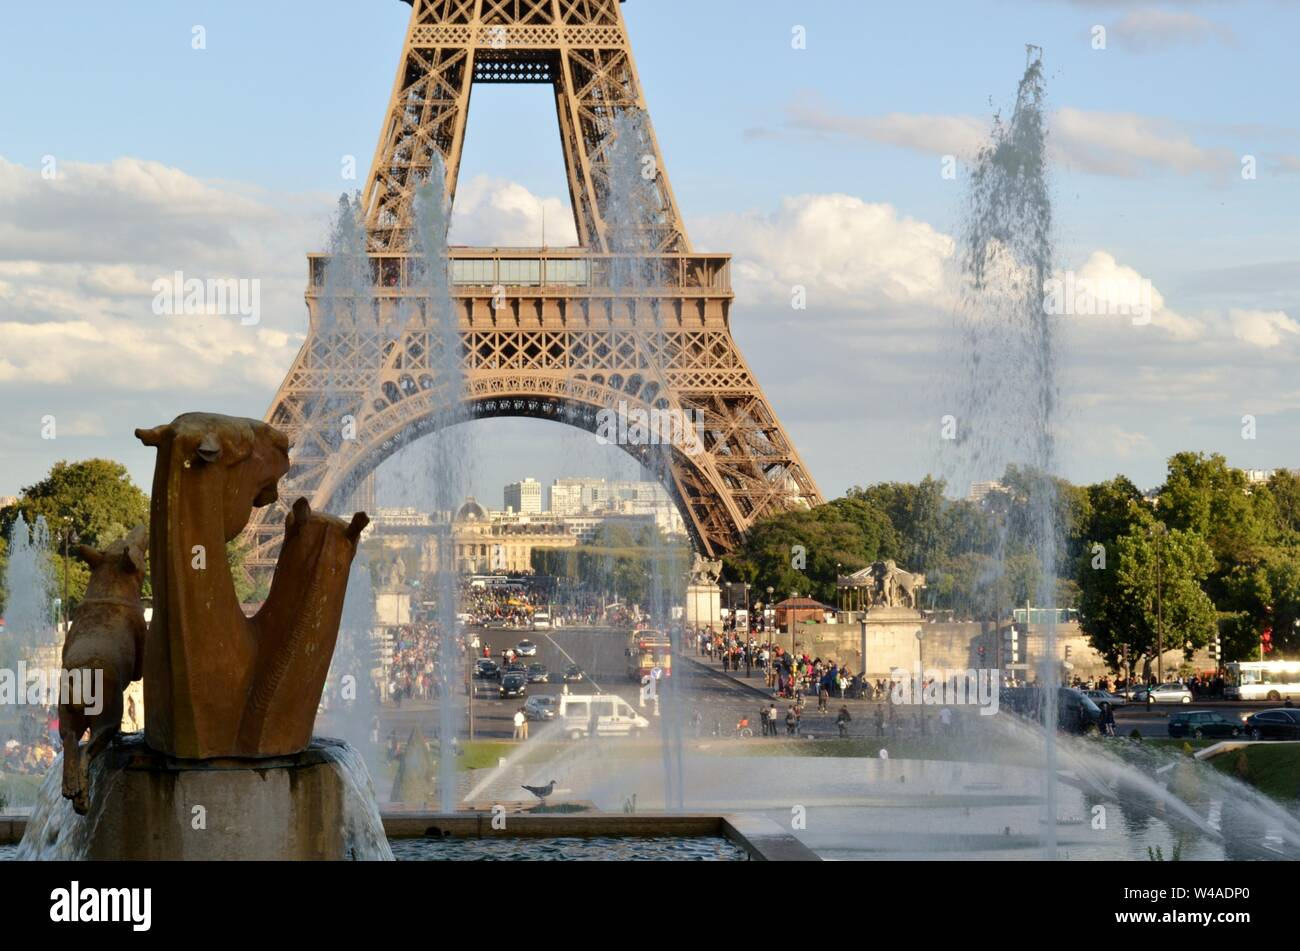 Detail of the fountain of Warsaw and the Eiffel Tower in the background. Stock Photo